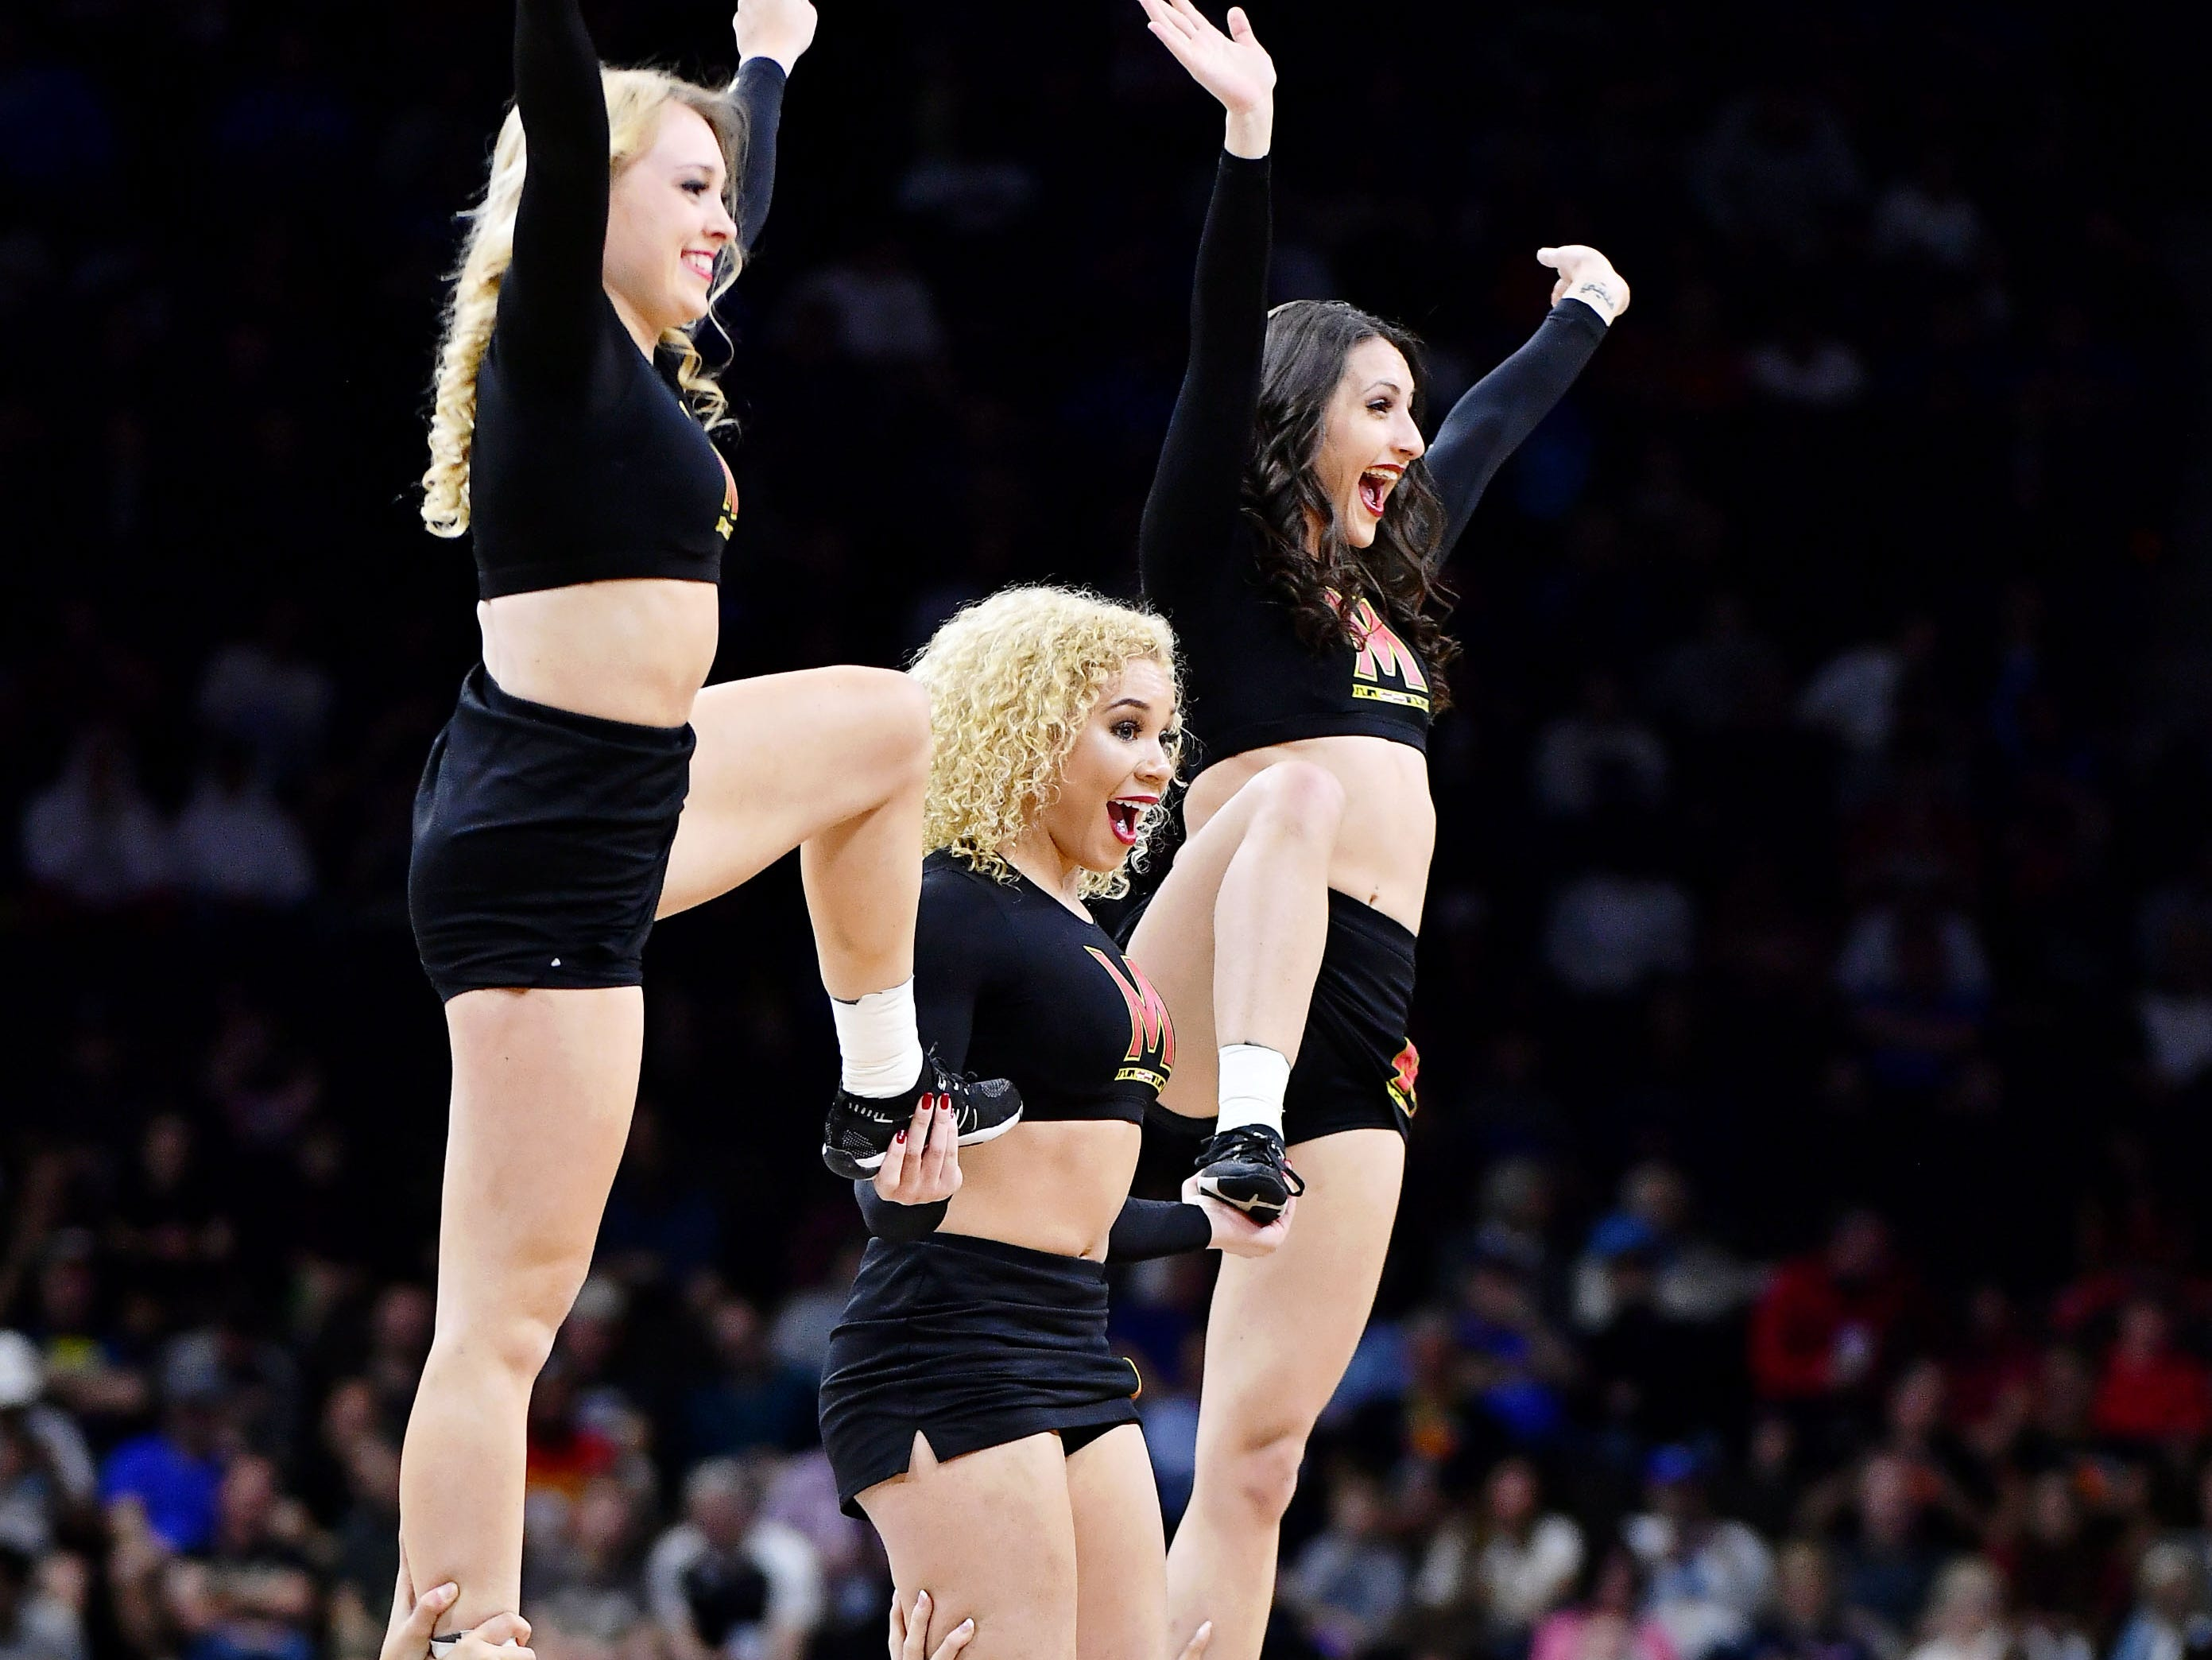 Mar 23, 2019; Jacksonville, FL, USA; The Maryland Terrapins cheerleaders perform during a timeout during the first half of their game against the LSU Tigers in the second round of the 2019 NCAA Tournament at Jacksonville Veterans Memorial Arena. Mandatory Credit: John David Mercer-USA TODAY Sports